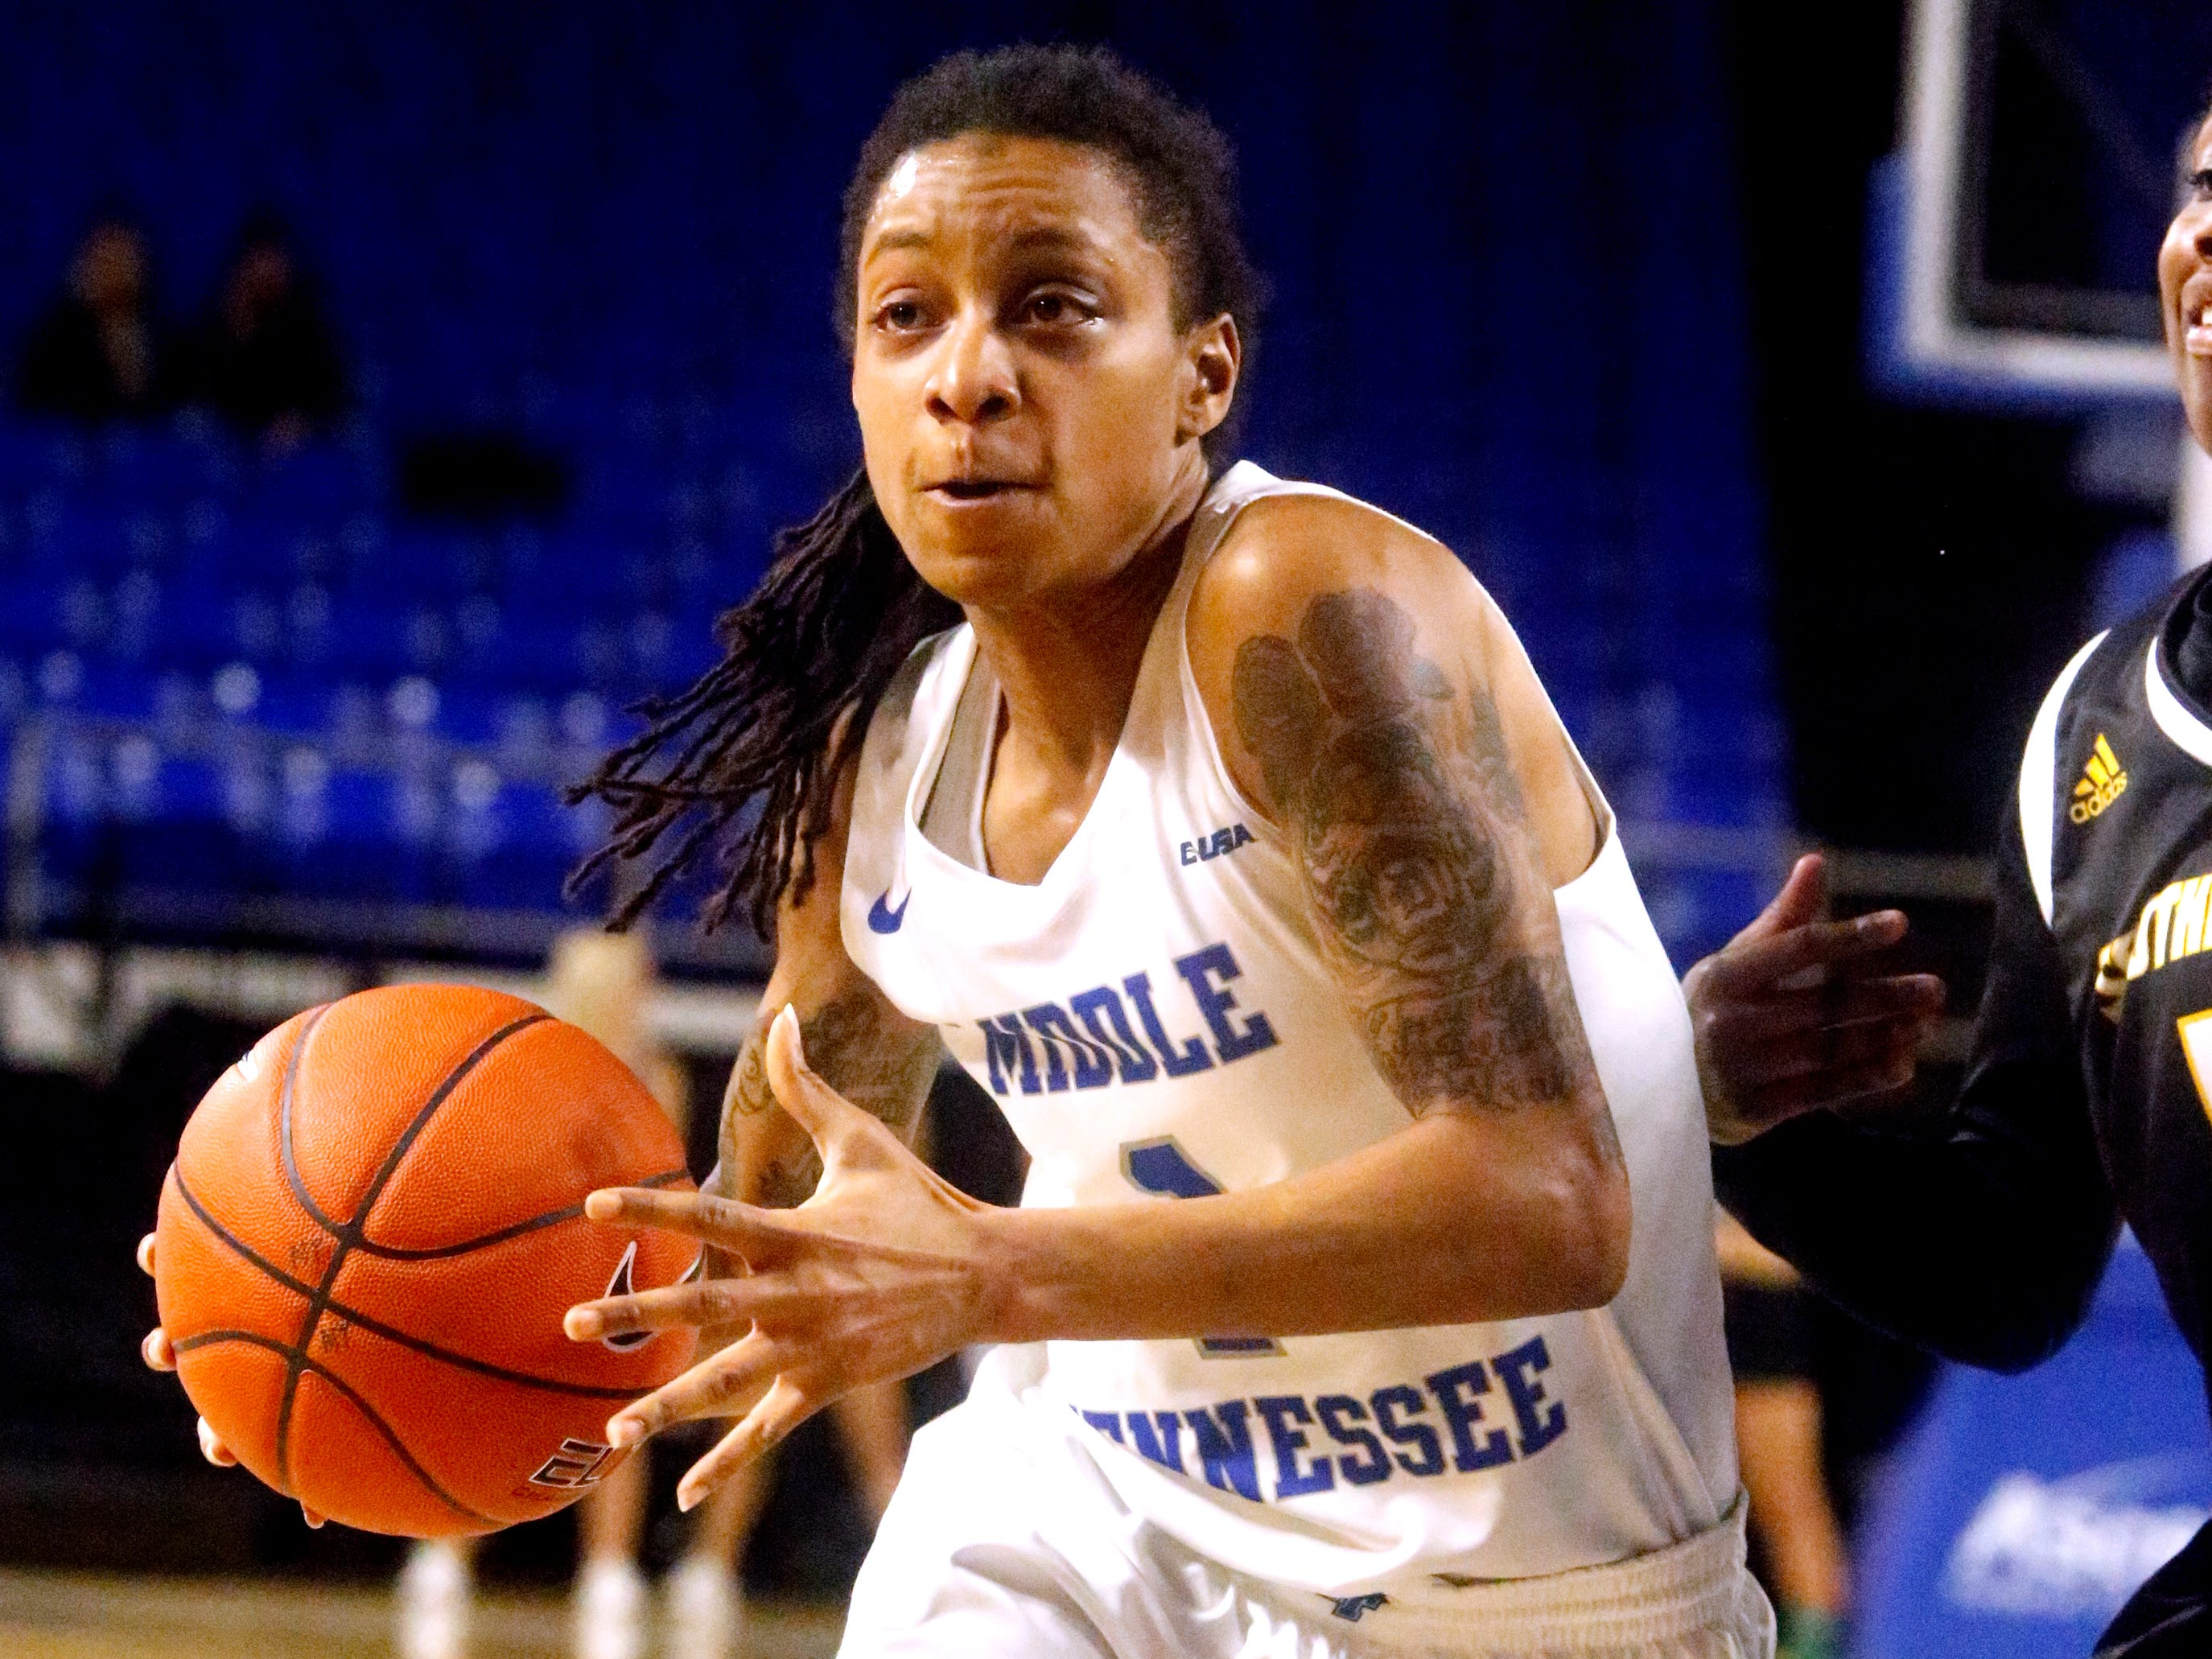 MTSU's guard A'Queen Hayes (1) drives to the basket during a game against Southern Miss on Thursday Jan. 10, 2019.